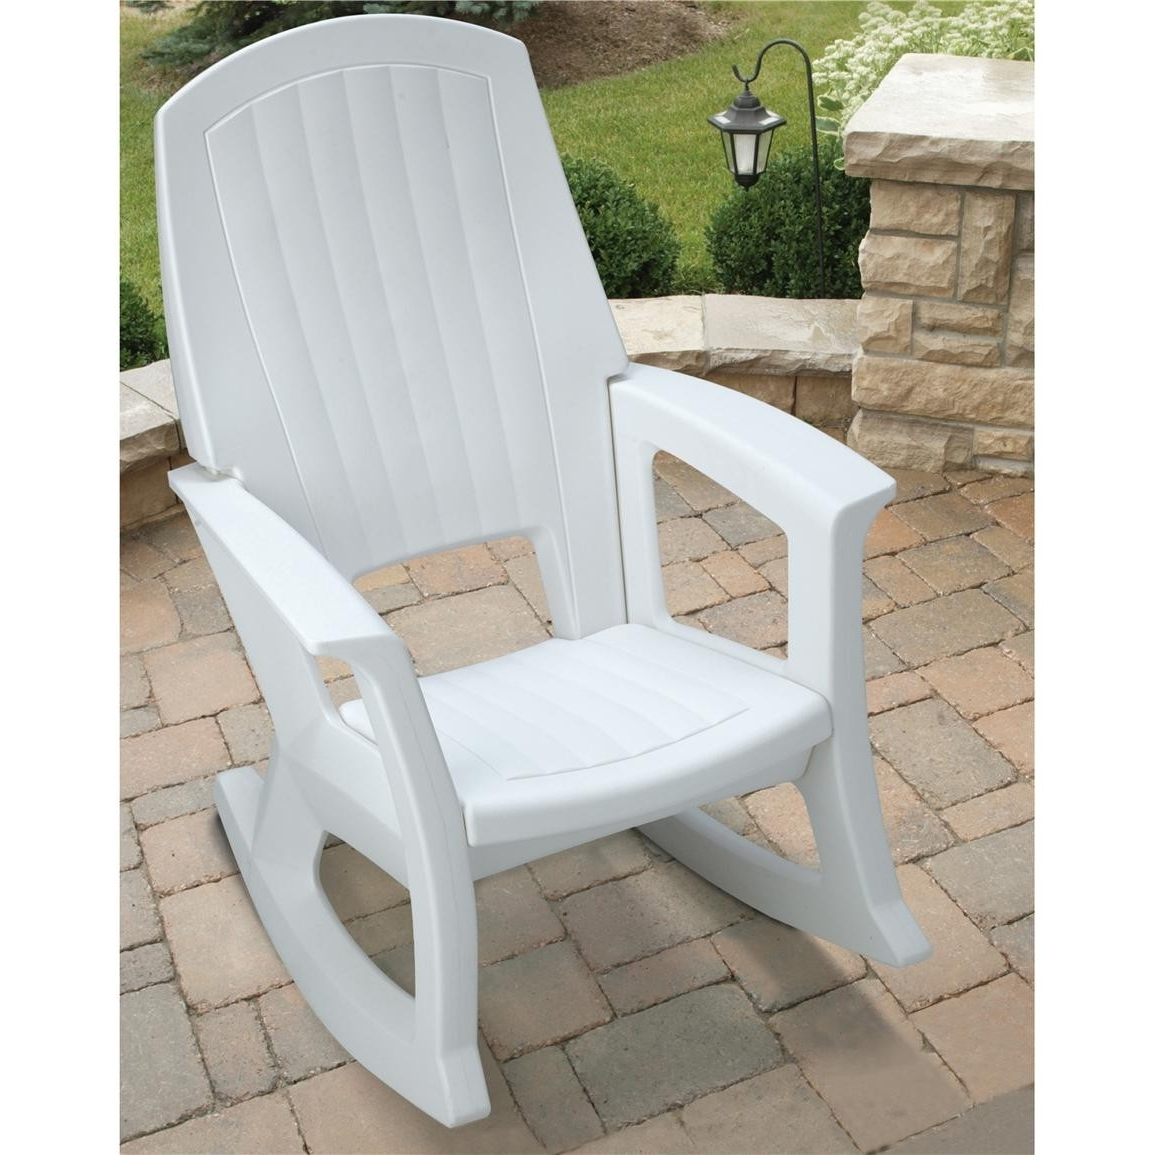 Preferred Modern Patio Rocking Chairs With Furniture & Organization: White Resin Patio Rocking Chairs And Patio (View 13 of 15)